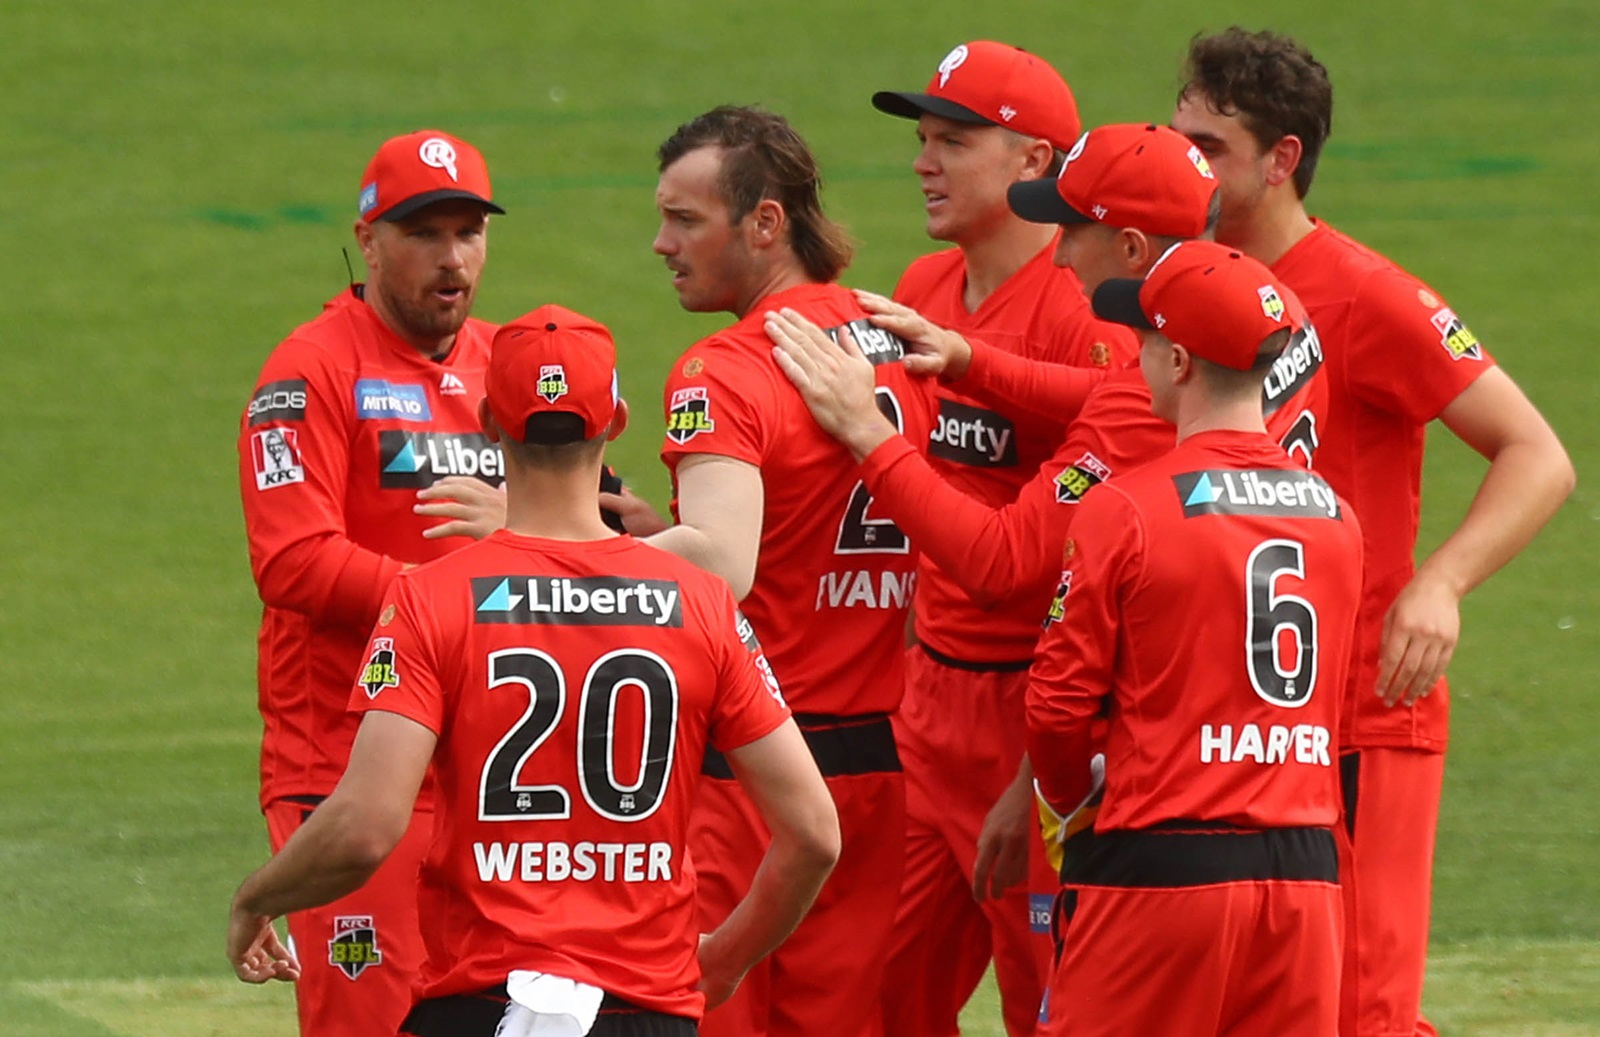 Evans sent! Gades quick sends Canes crashing out of BBL|10 – cricket.com.au